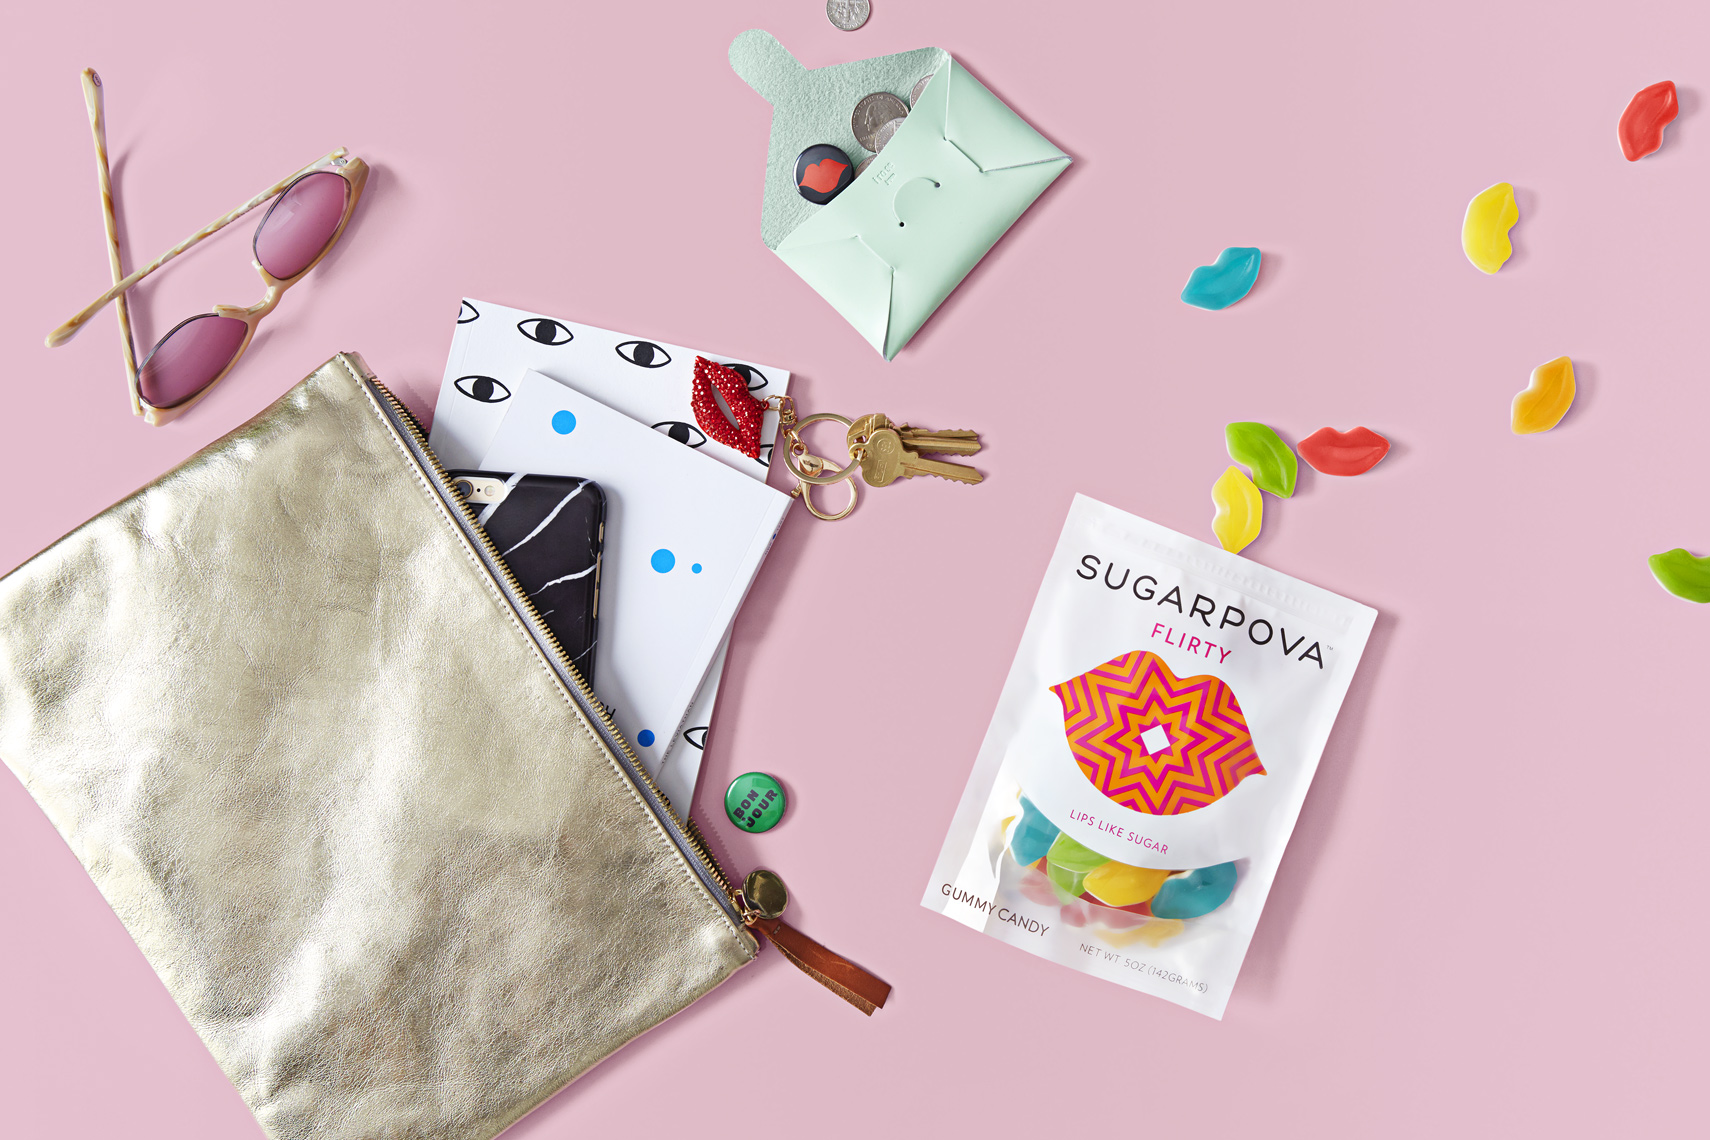 022316_Sugarpova_01_Still-Life_0036